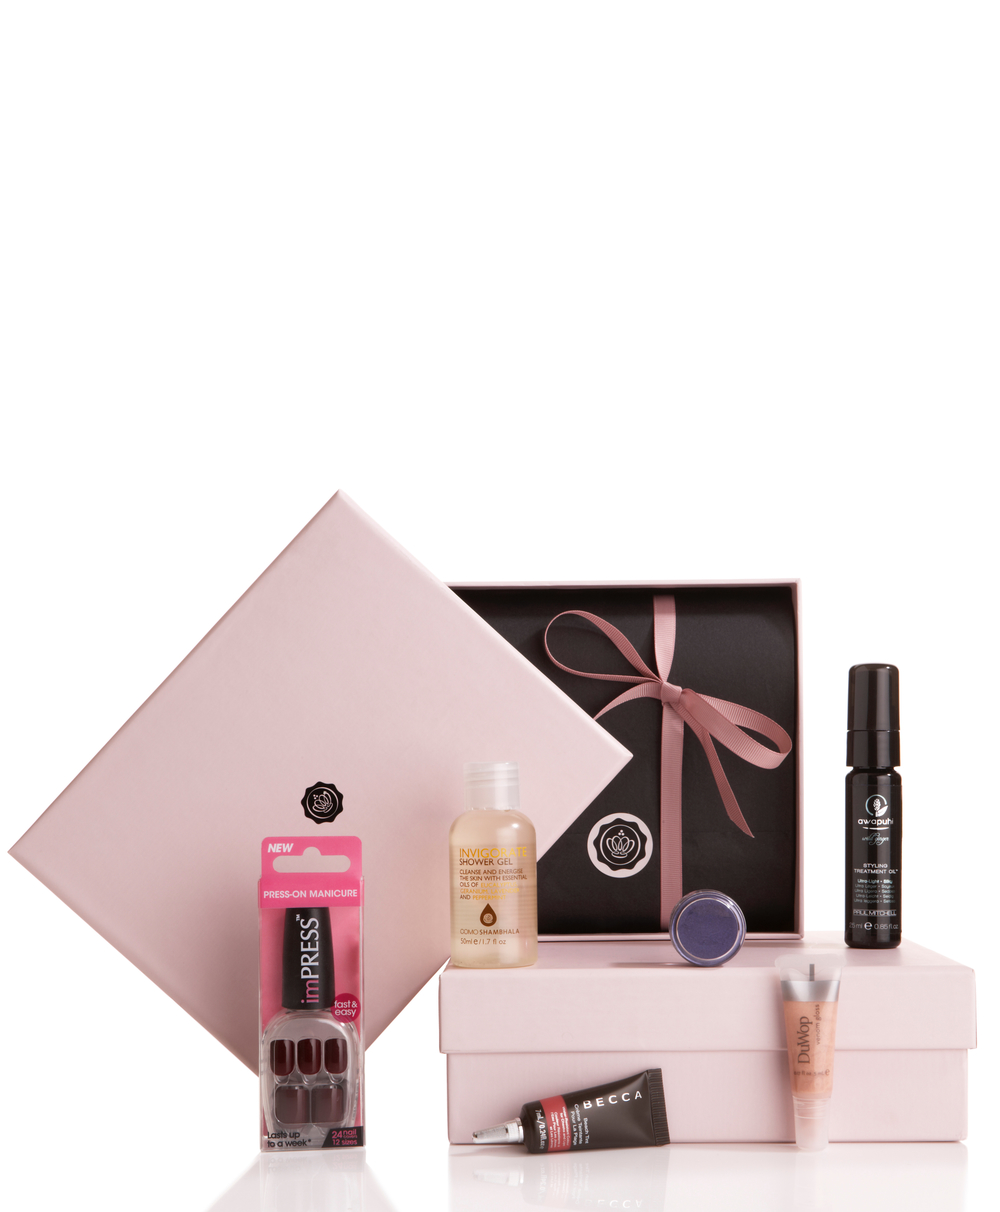 2. Glossybox - The Deluxe